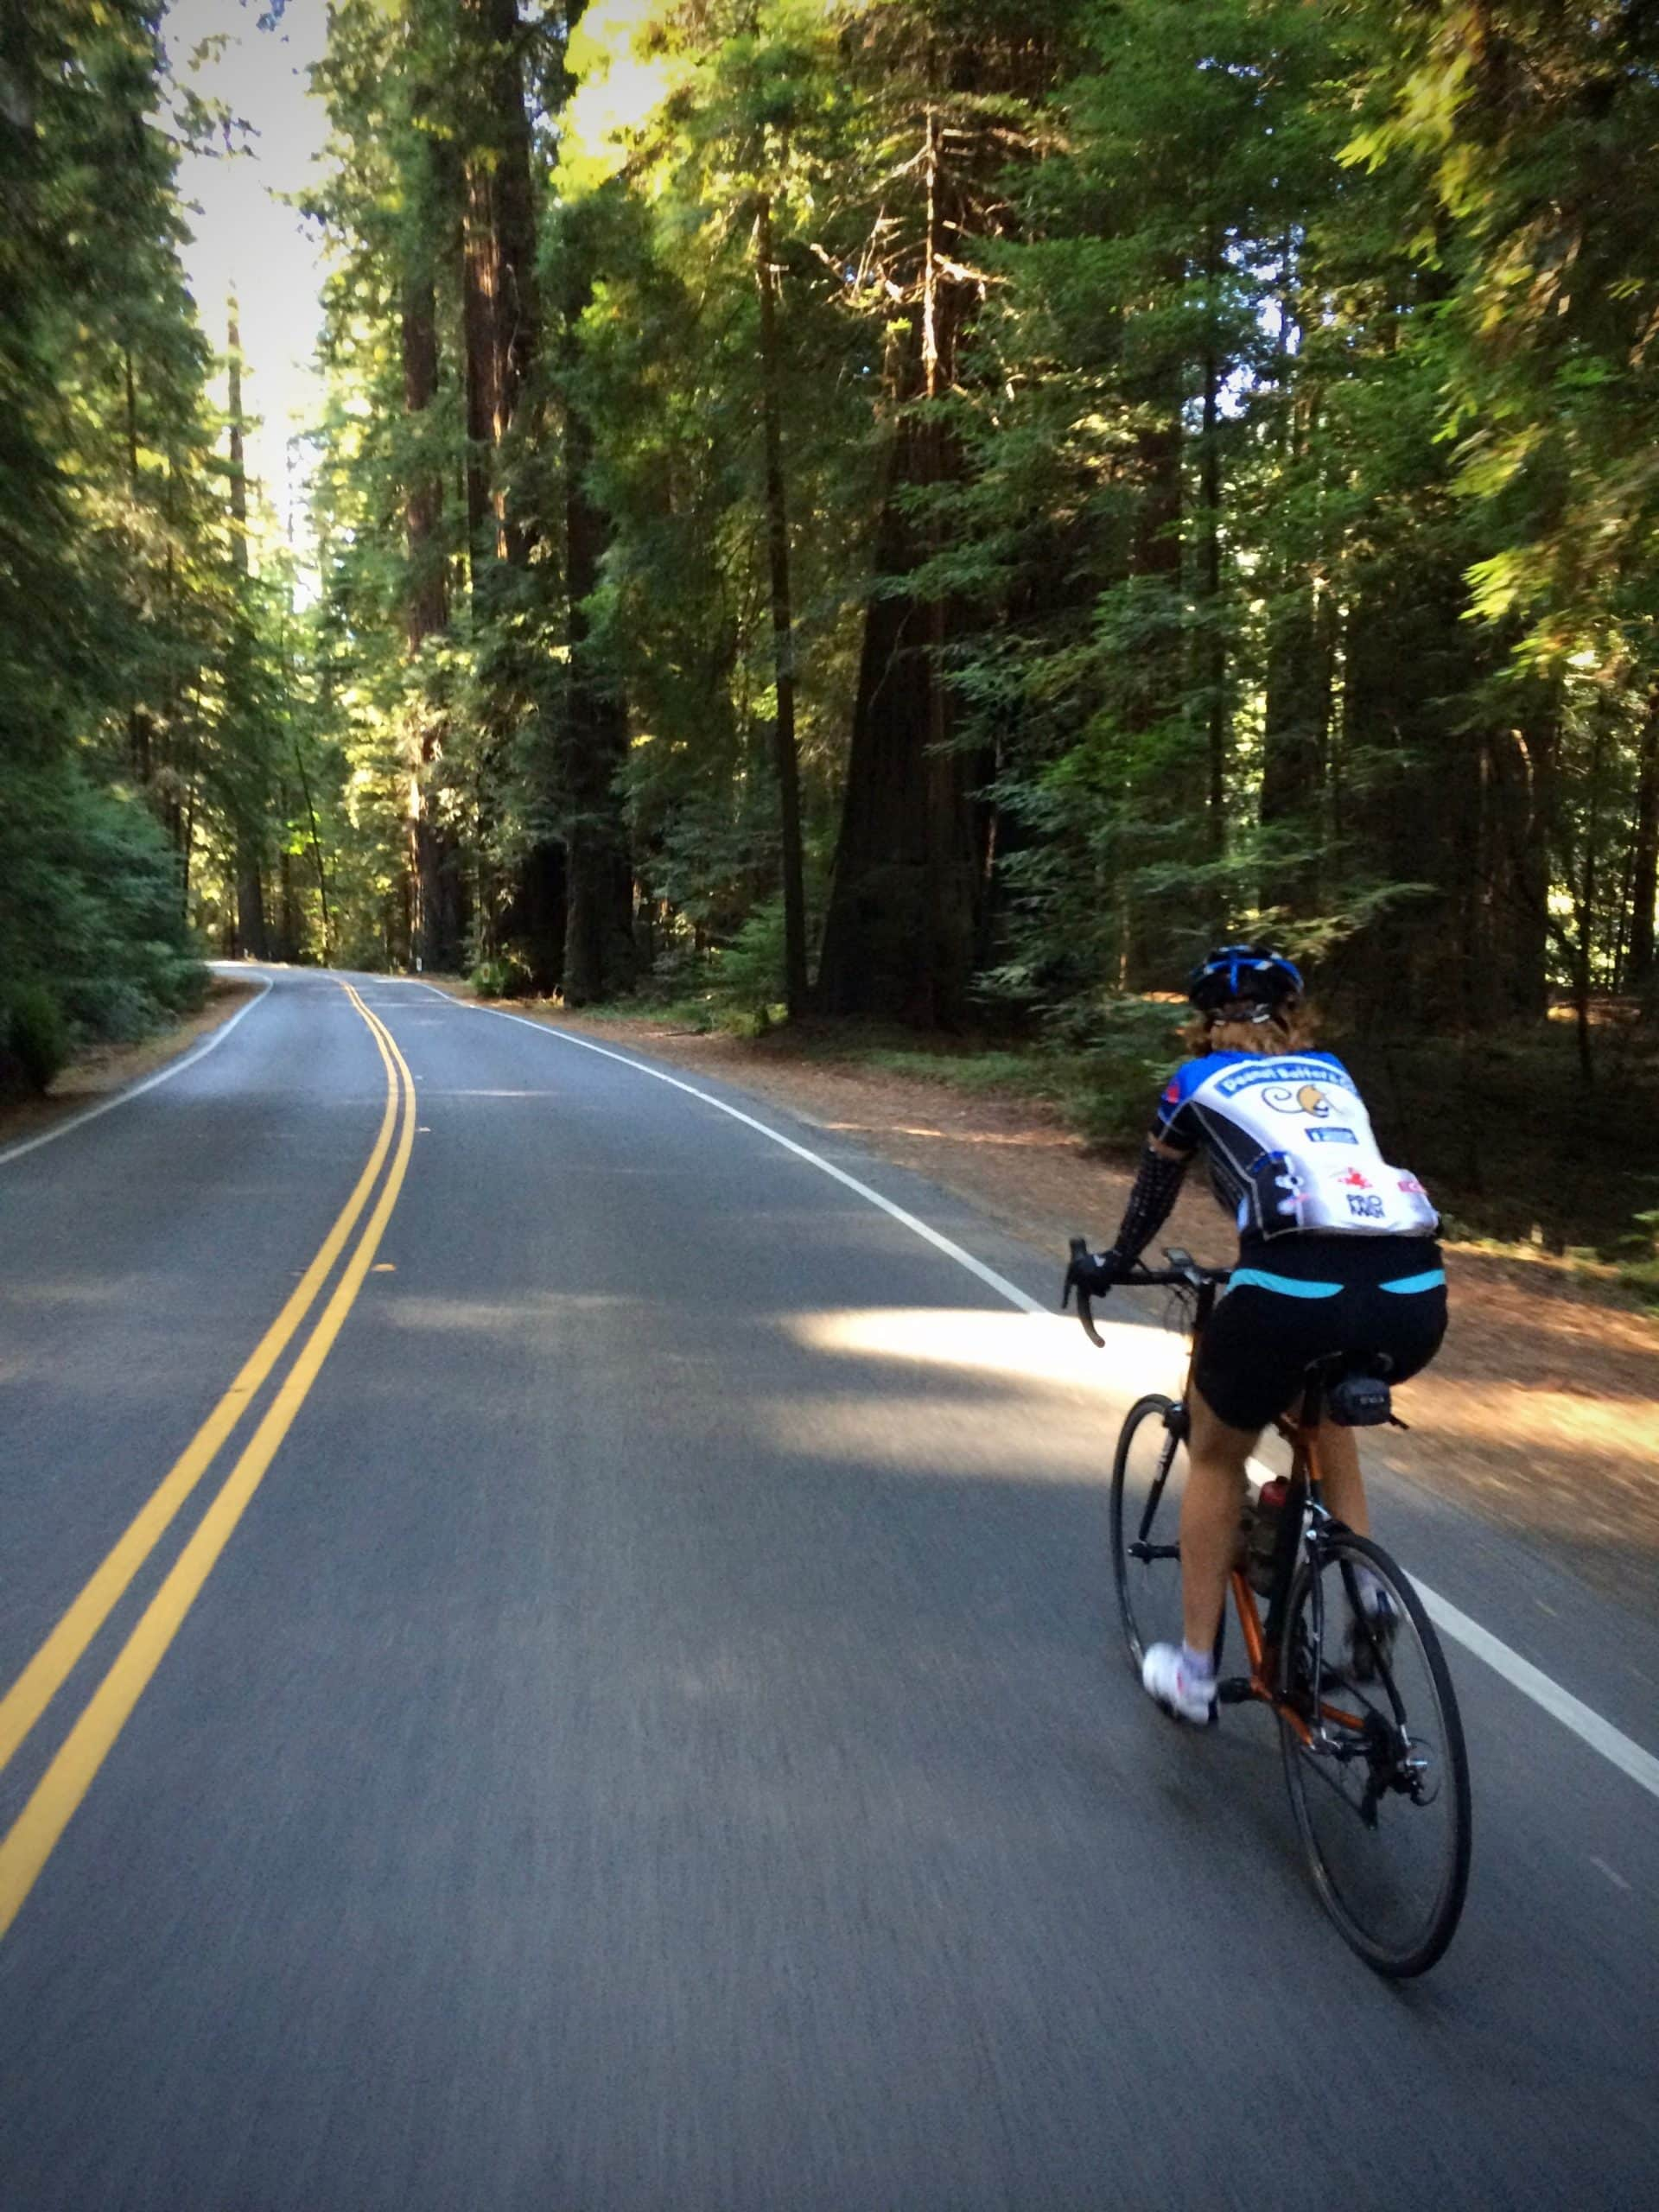 Gravel Girl riding the Avenue of the Giants road in Humboldt Redwoods state park in California.